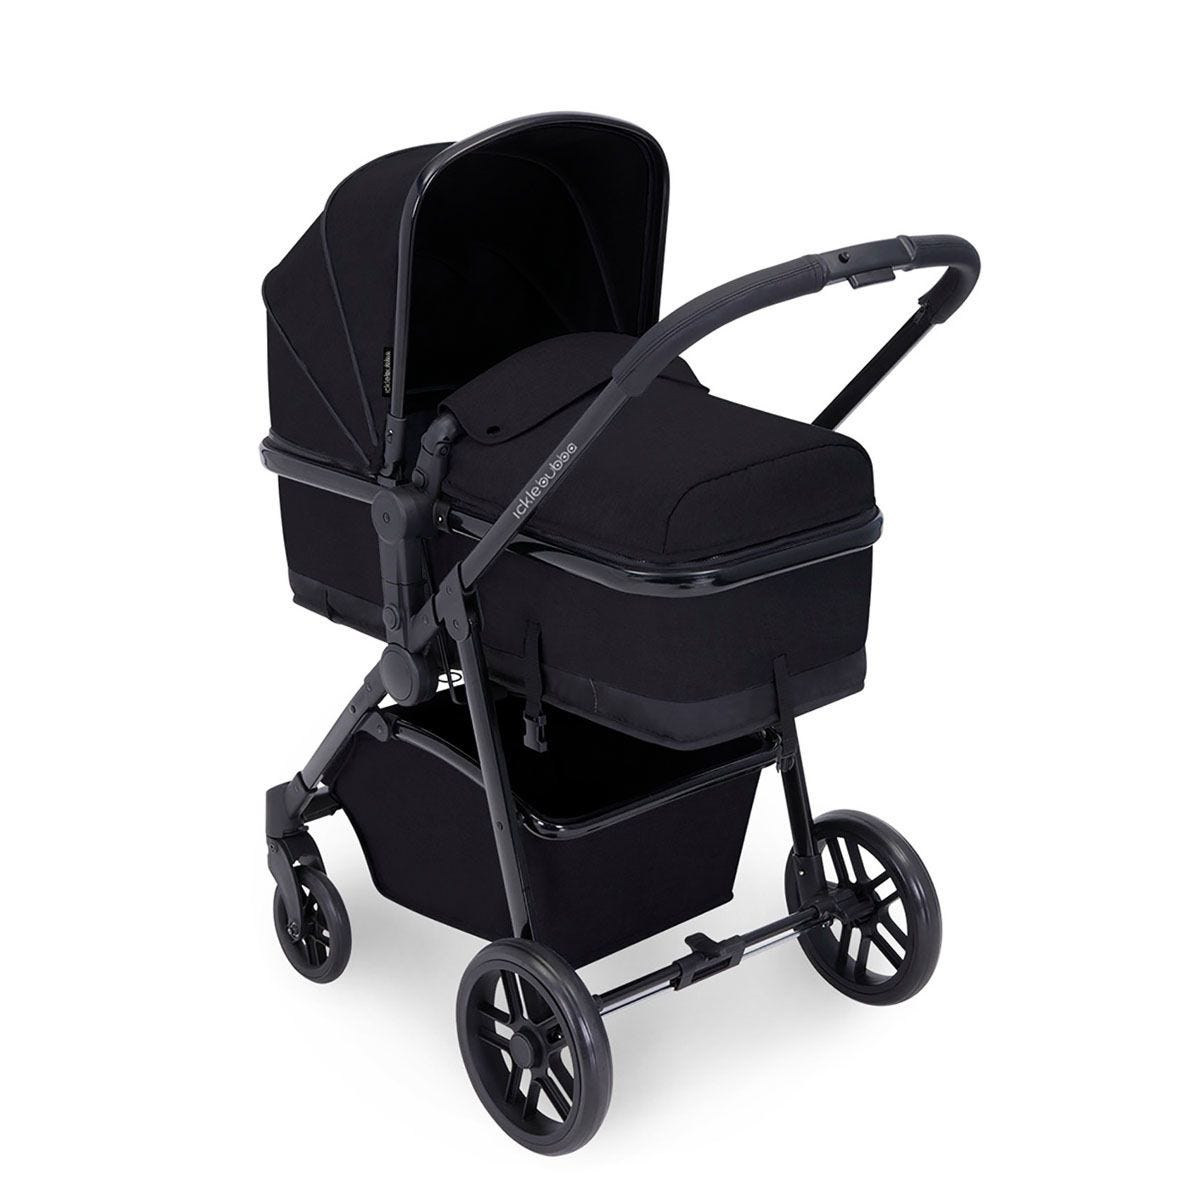 Ickle Bubba Moon 2 in 1 Pushchair - Black on Black with Black Handles